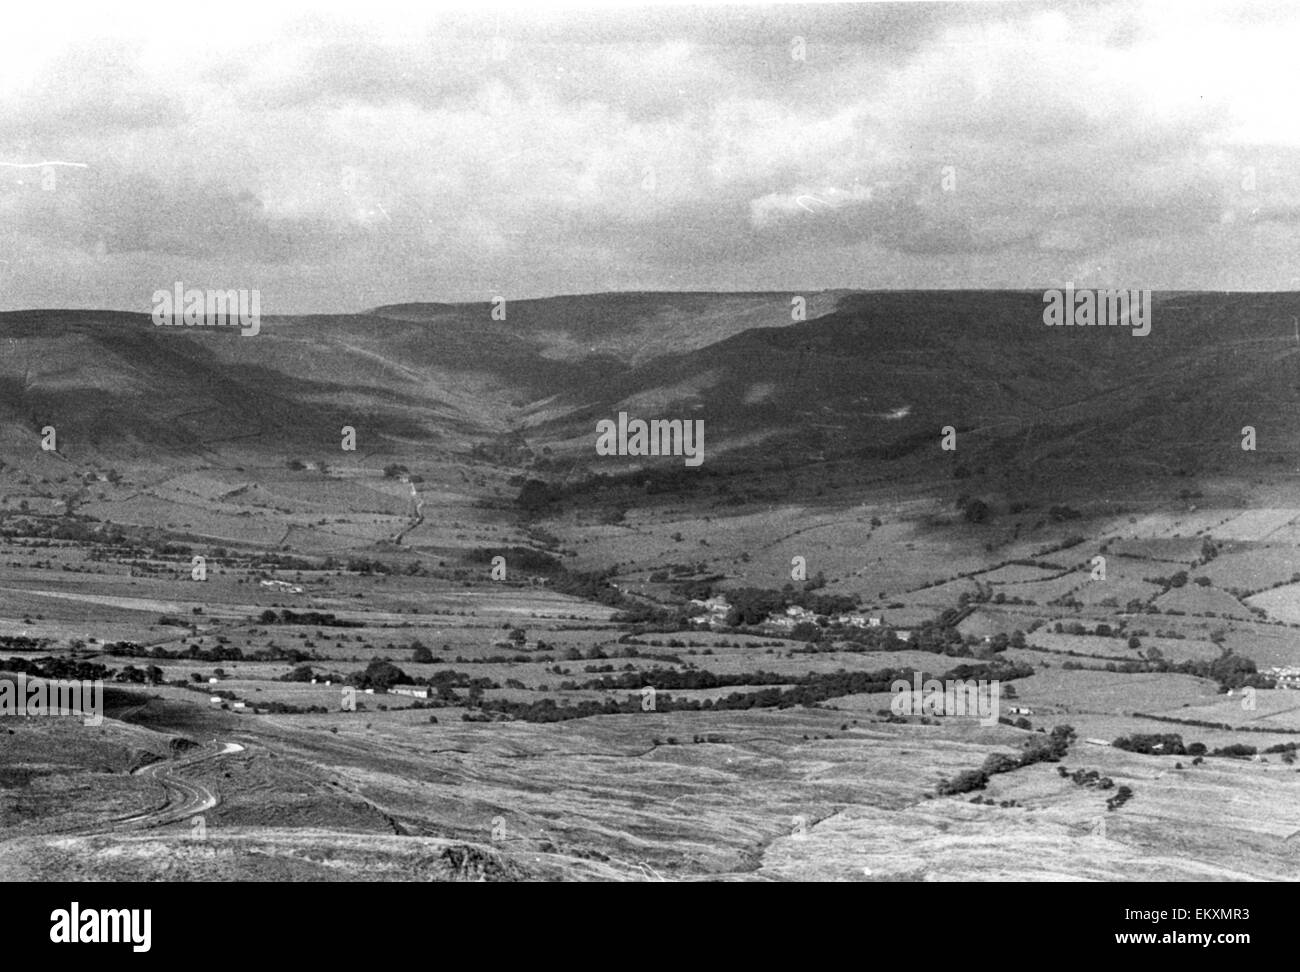 Vale of Edale and the hamlet of Barber Booth seen from Mamtor, Derbyshire. - Stock Image